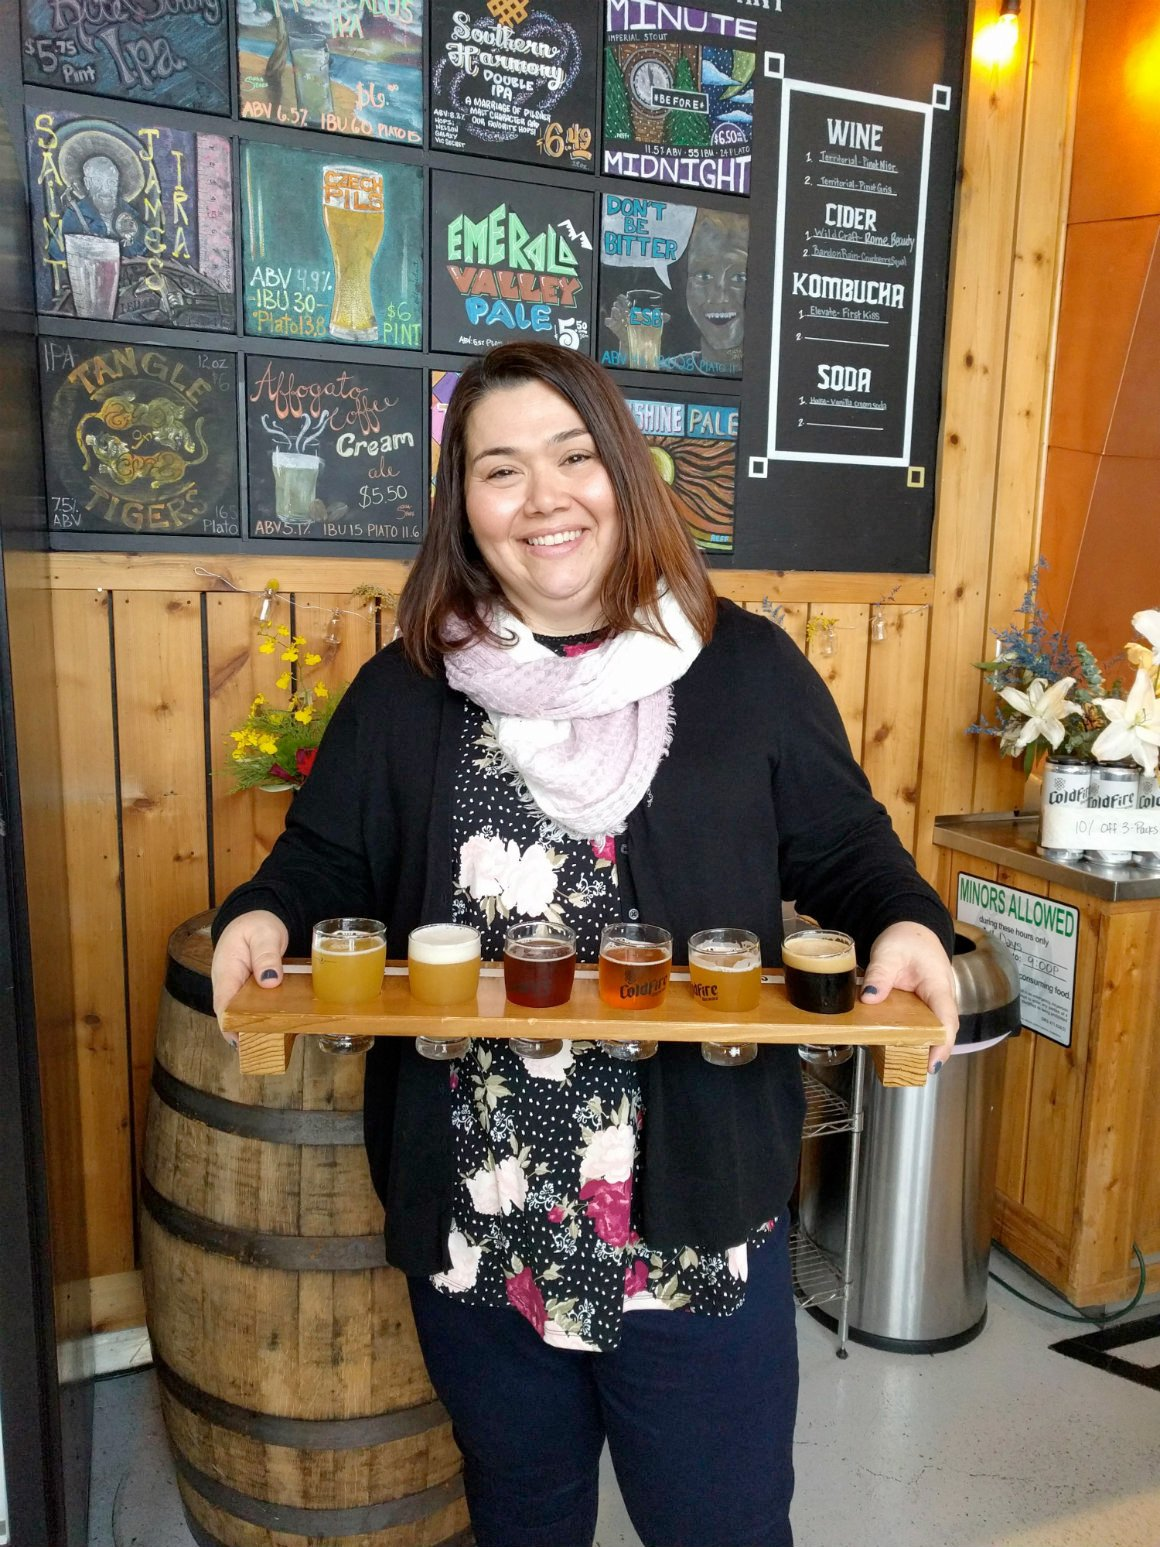 ColdFire Brewery In Eugene offers a wide variety of craft beer Image by David Nershi